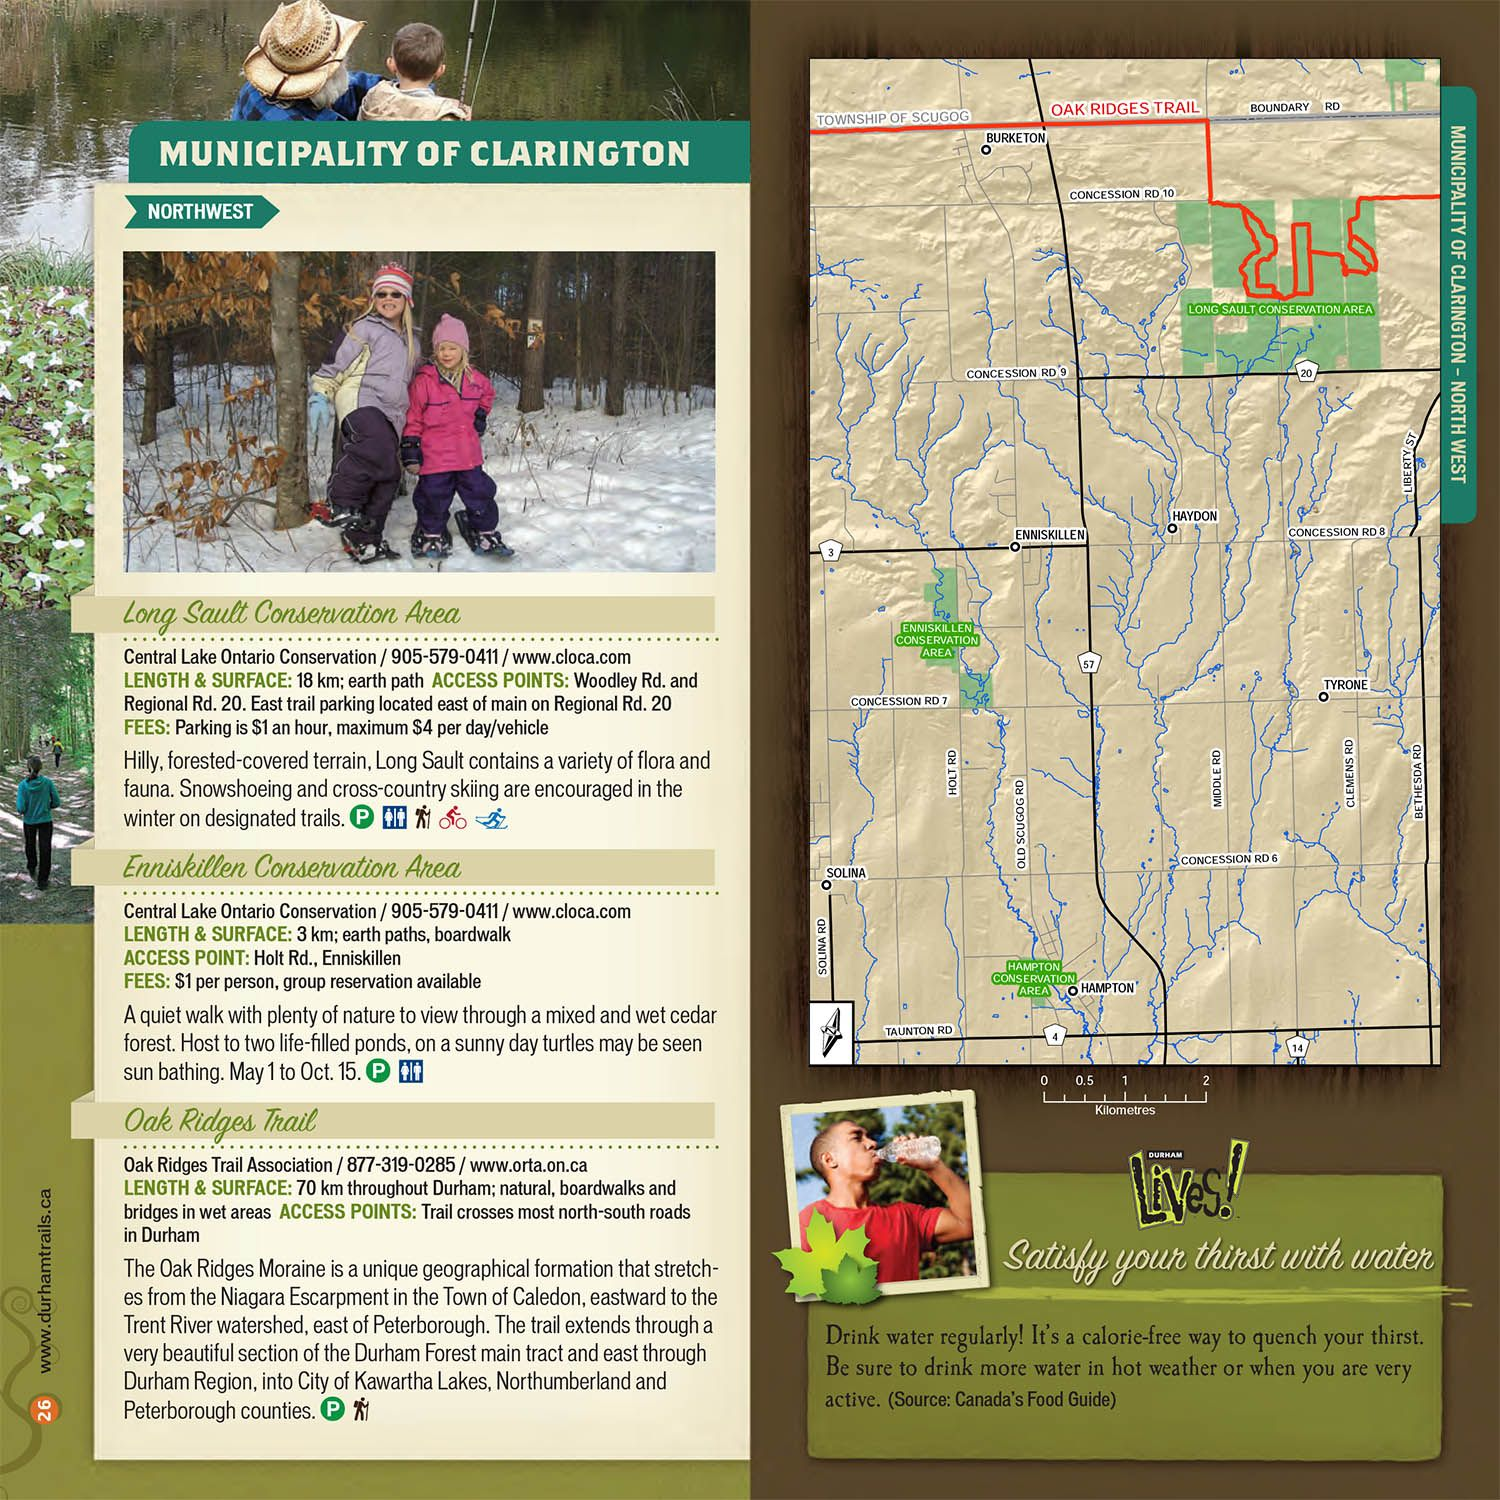 Municipality of Clarington Northwest Trail Guide